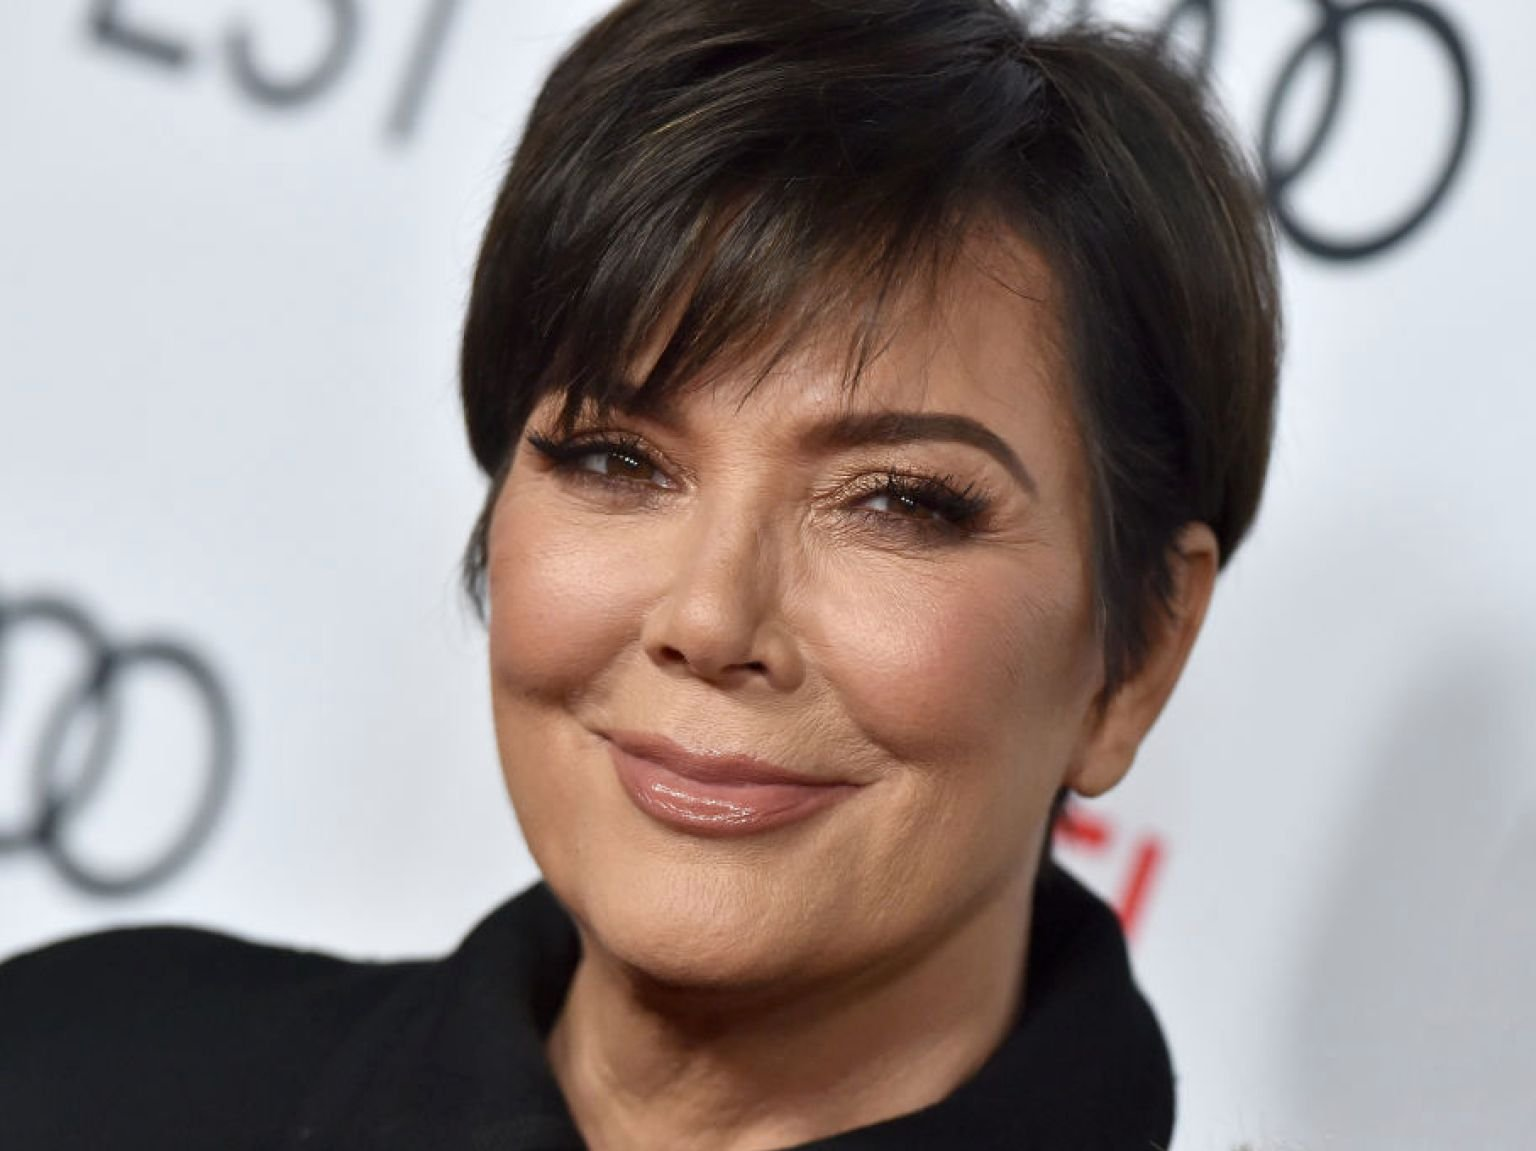 E! Releases Statement On Kardashians Ending KUWTK As Fans Want Kris Jenner To Star In RHOBH